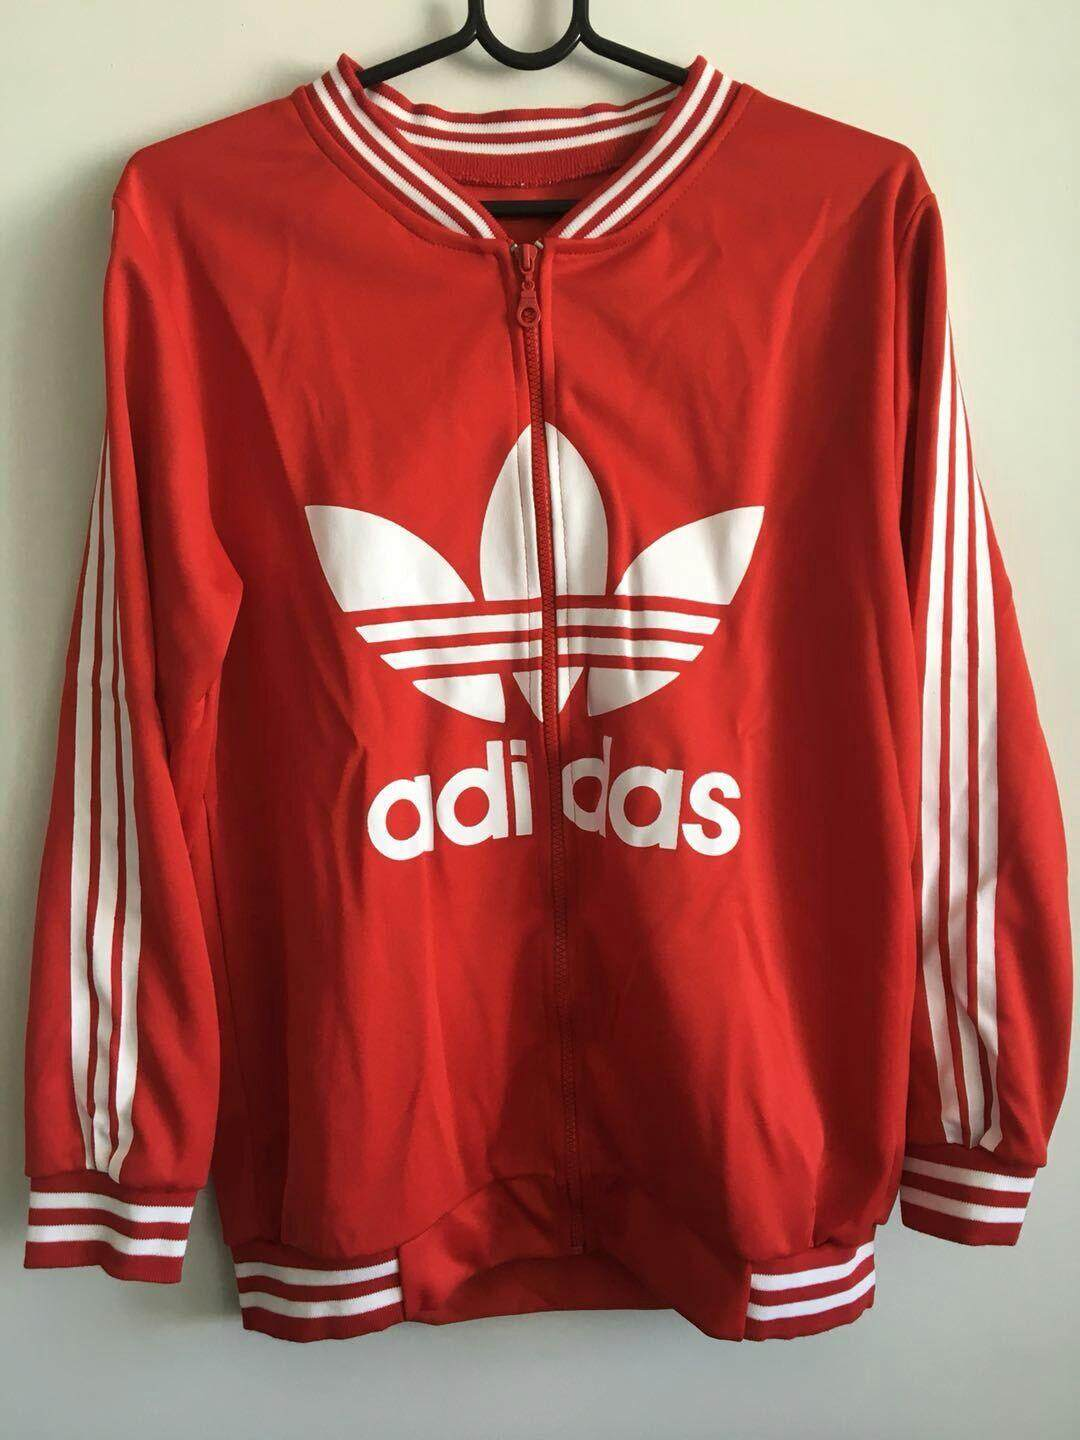 Adidas Lady Man Modern New Fashion Popular Comfortable Casual Sports Jacket.